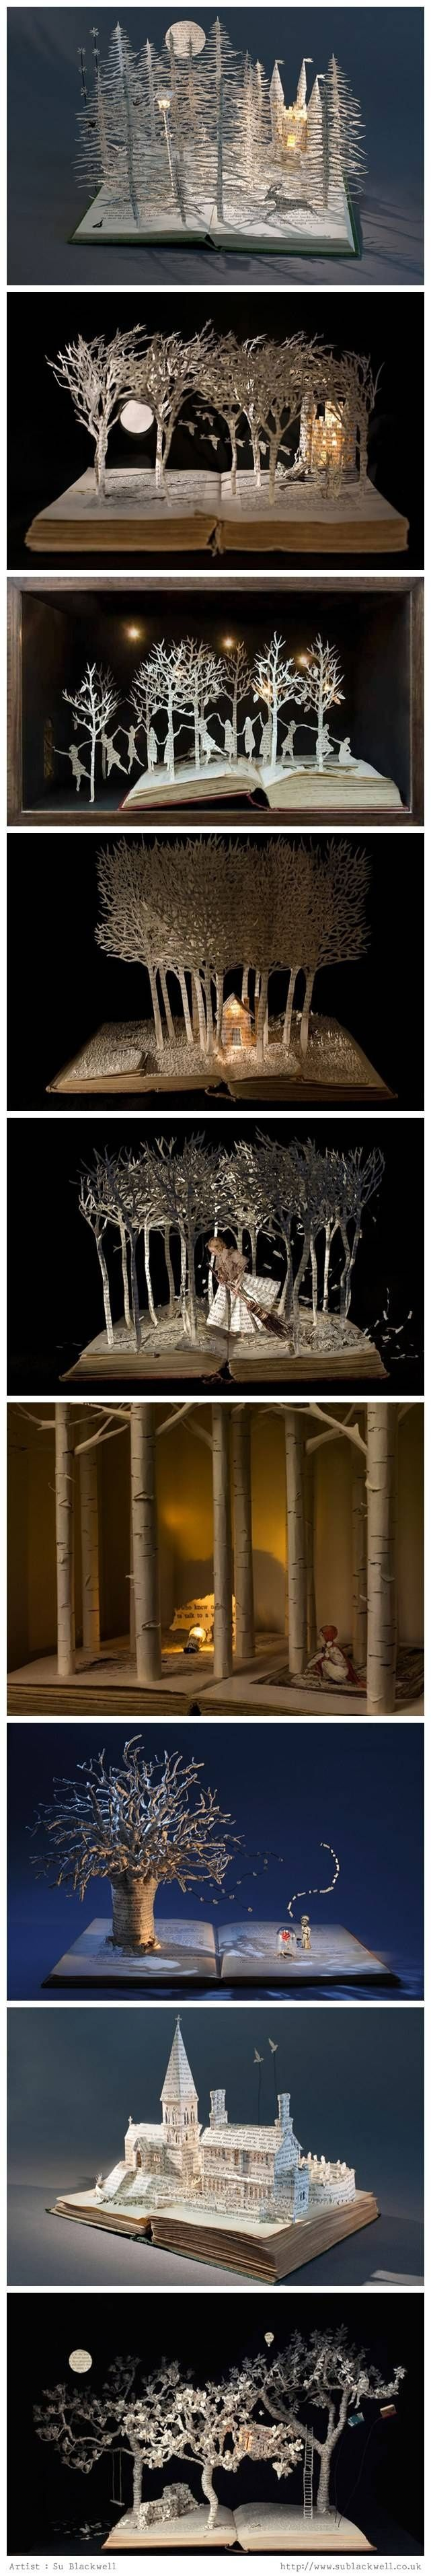 Pandoras box wallpaper image featuring english sculpture - Book Sculptures By A British Artist Su Blackwell Su S Book Sculptures Are Currently